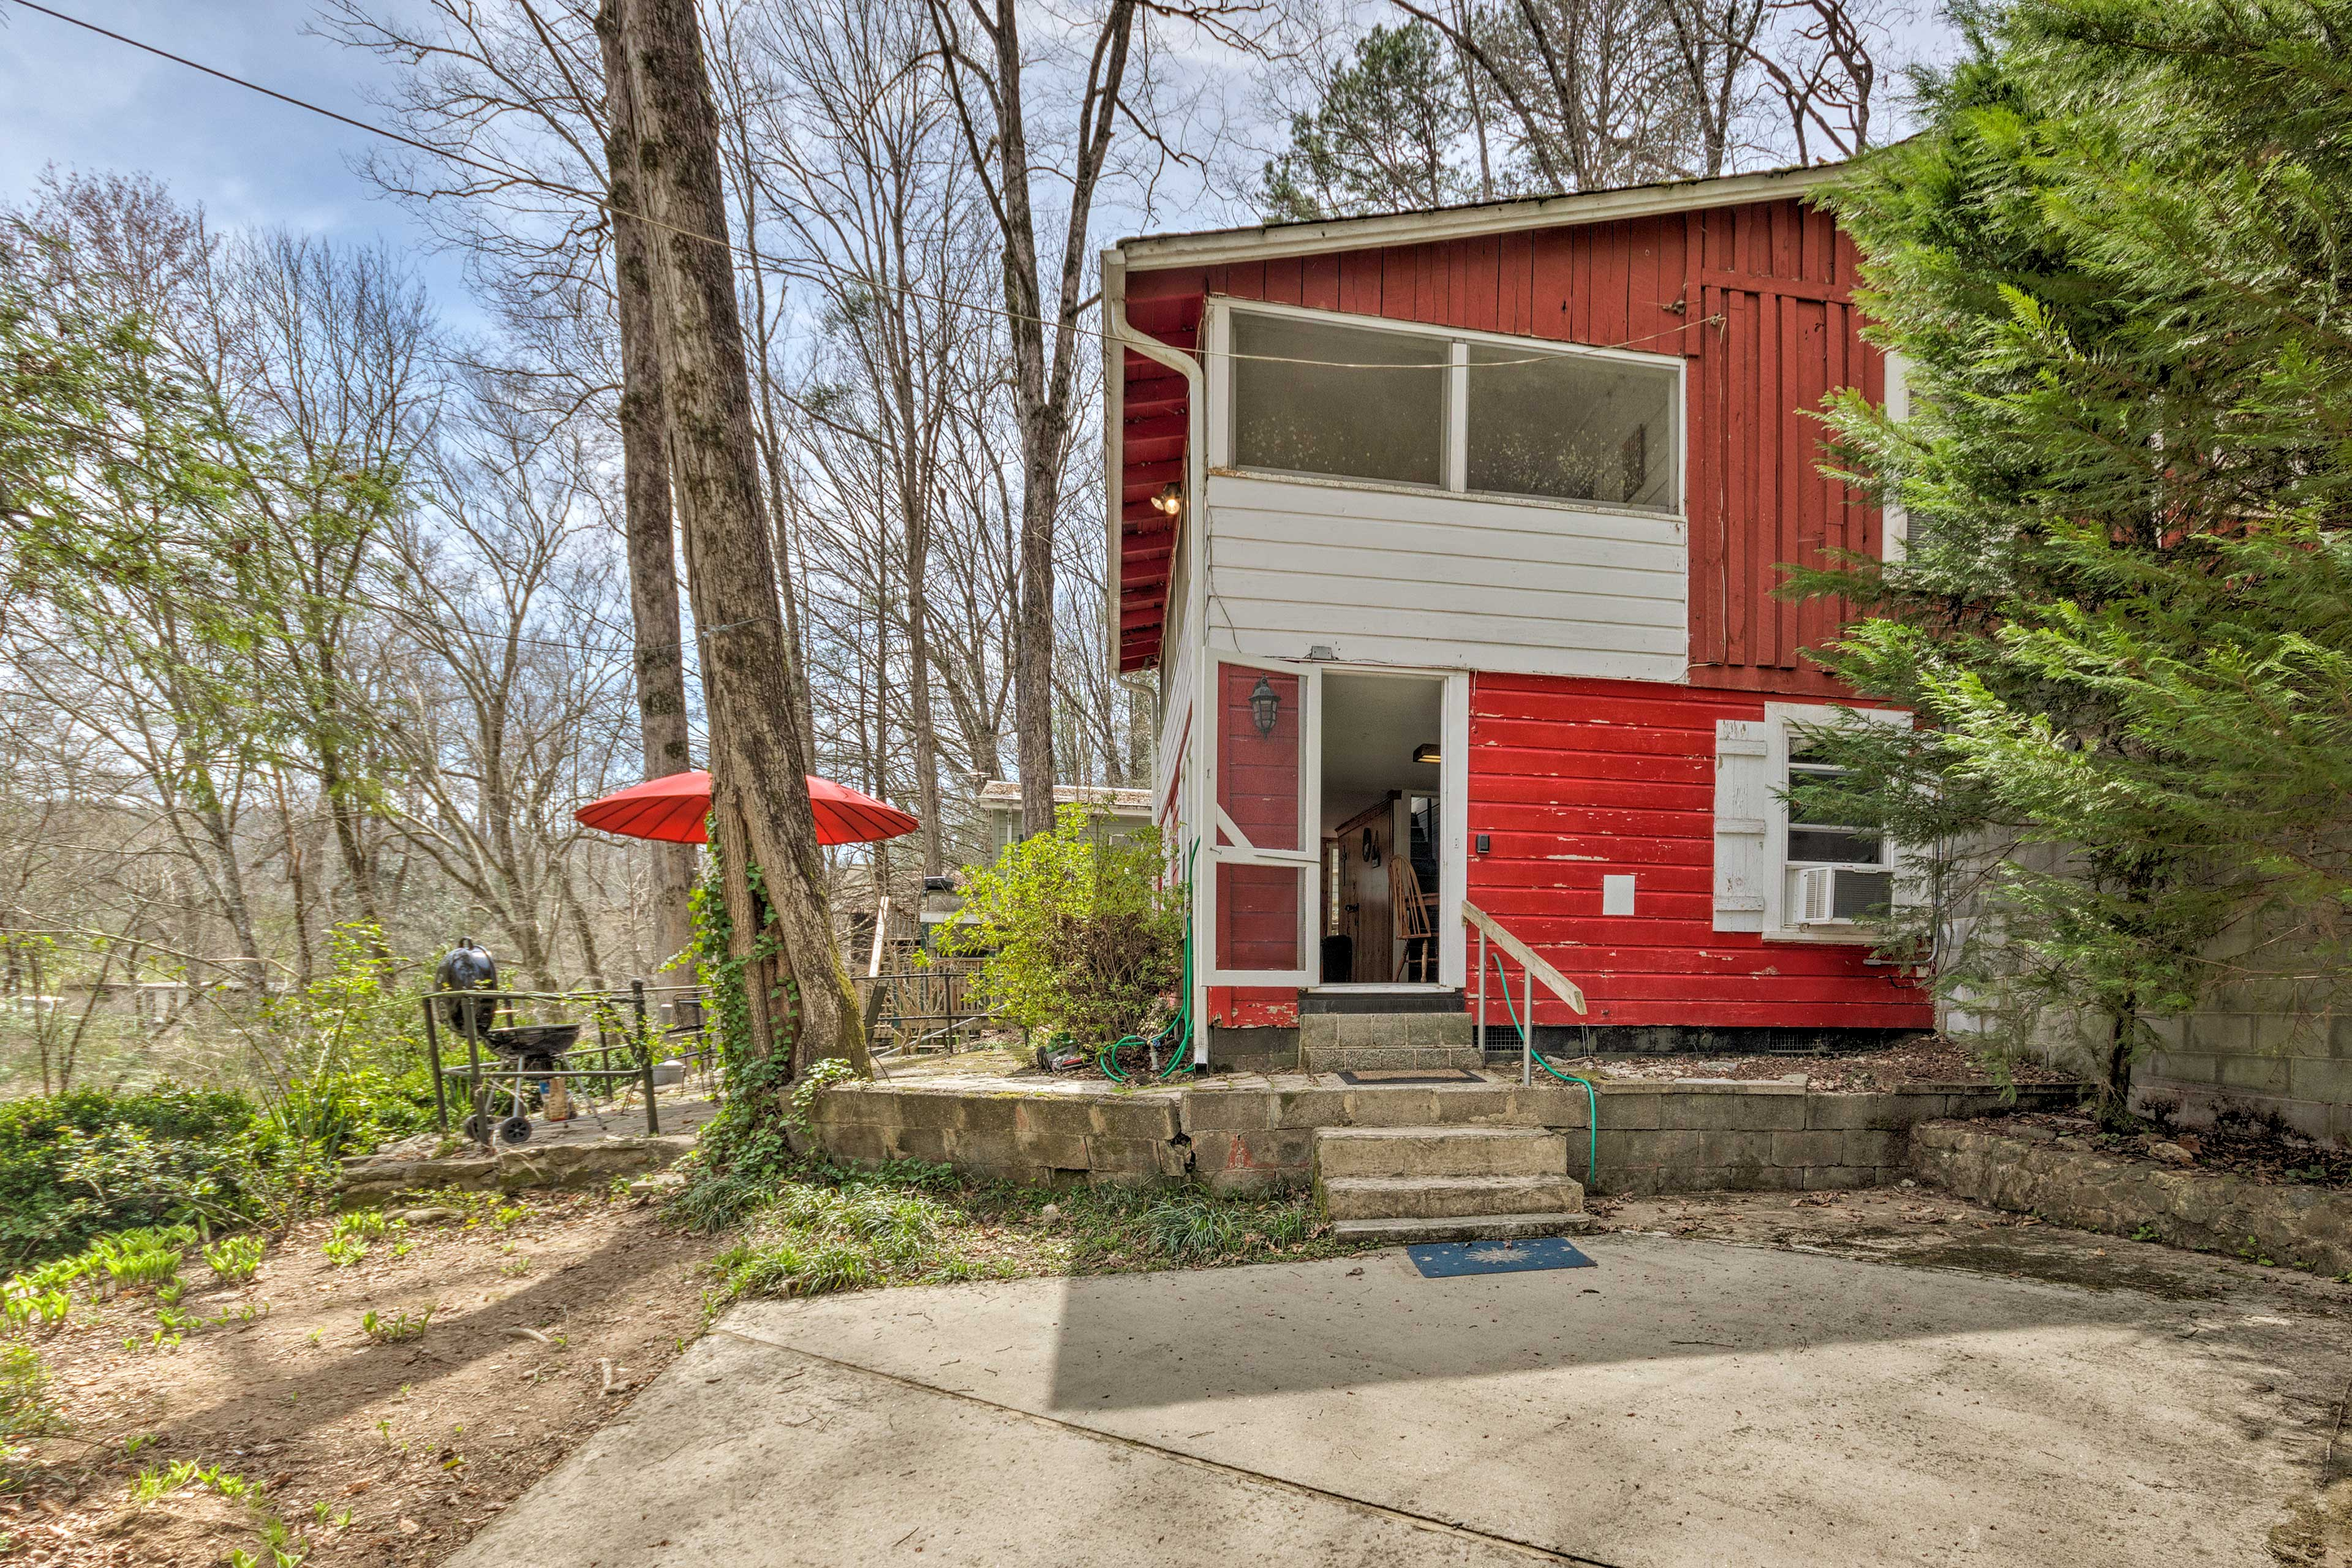 The 3-bedroom, 1.5-bathroom home has a sunporch and lush forest surroundings.